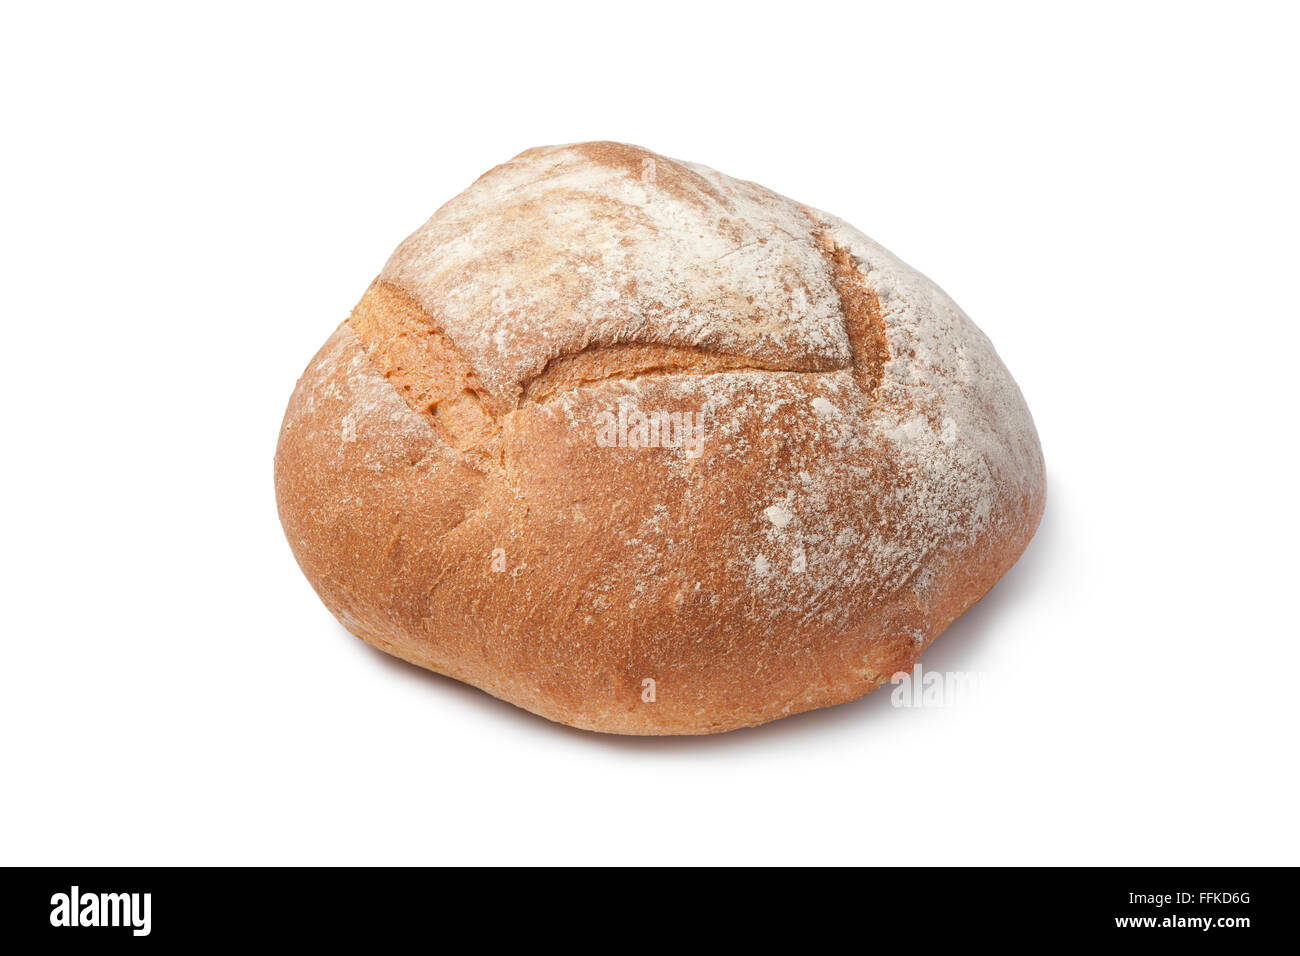 Whole Fresh Artisan Loaf Of Bread On White Background